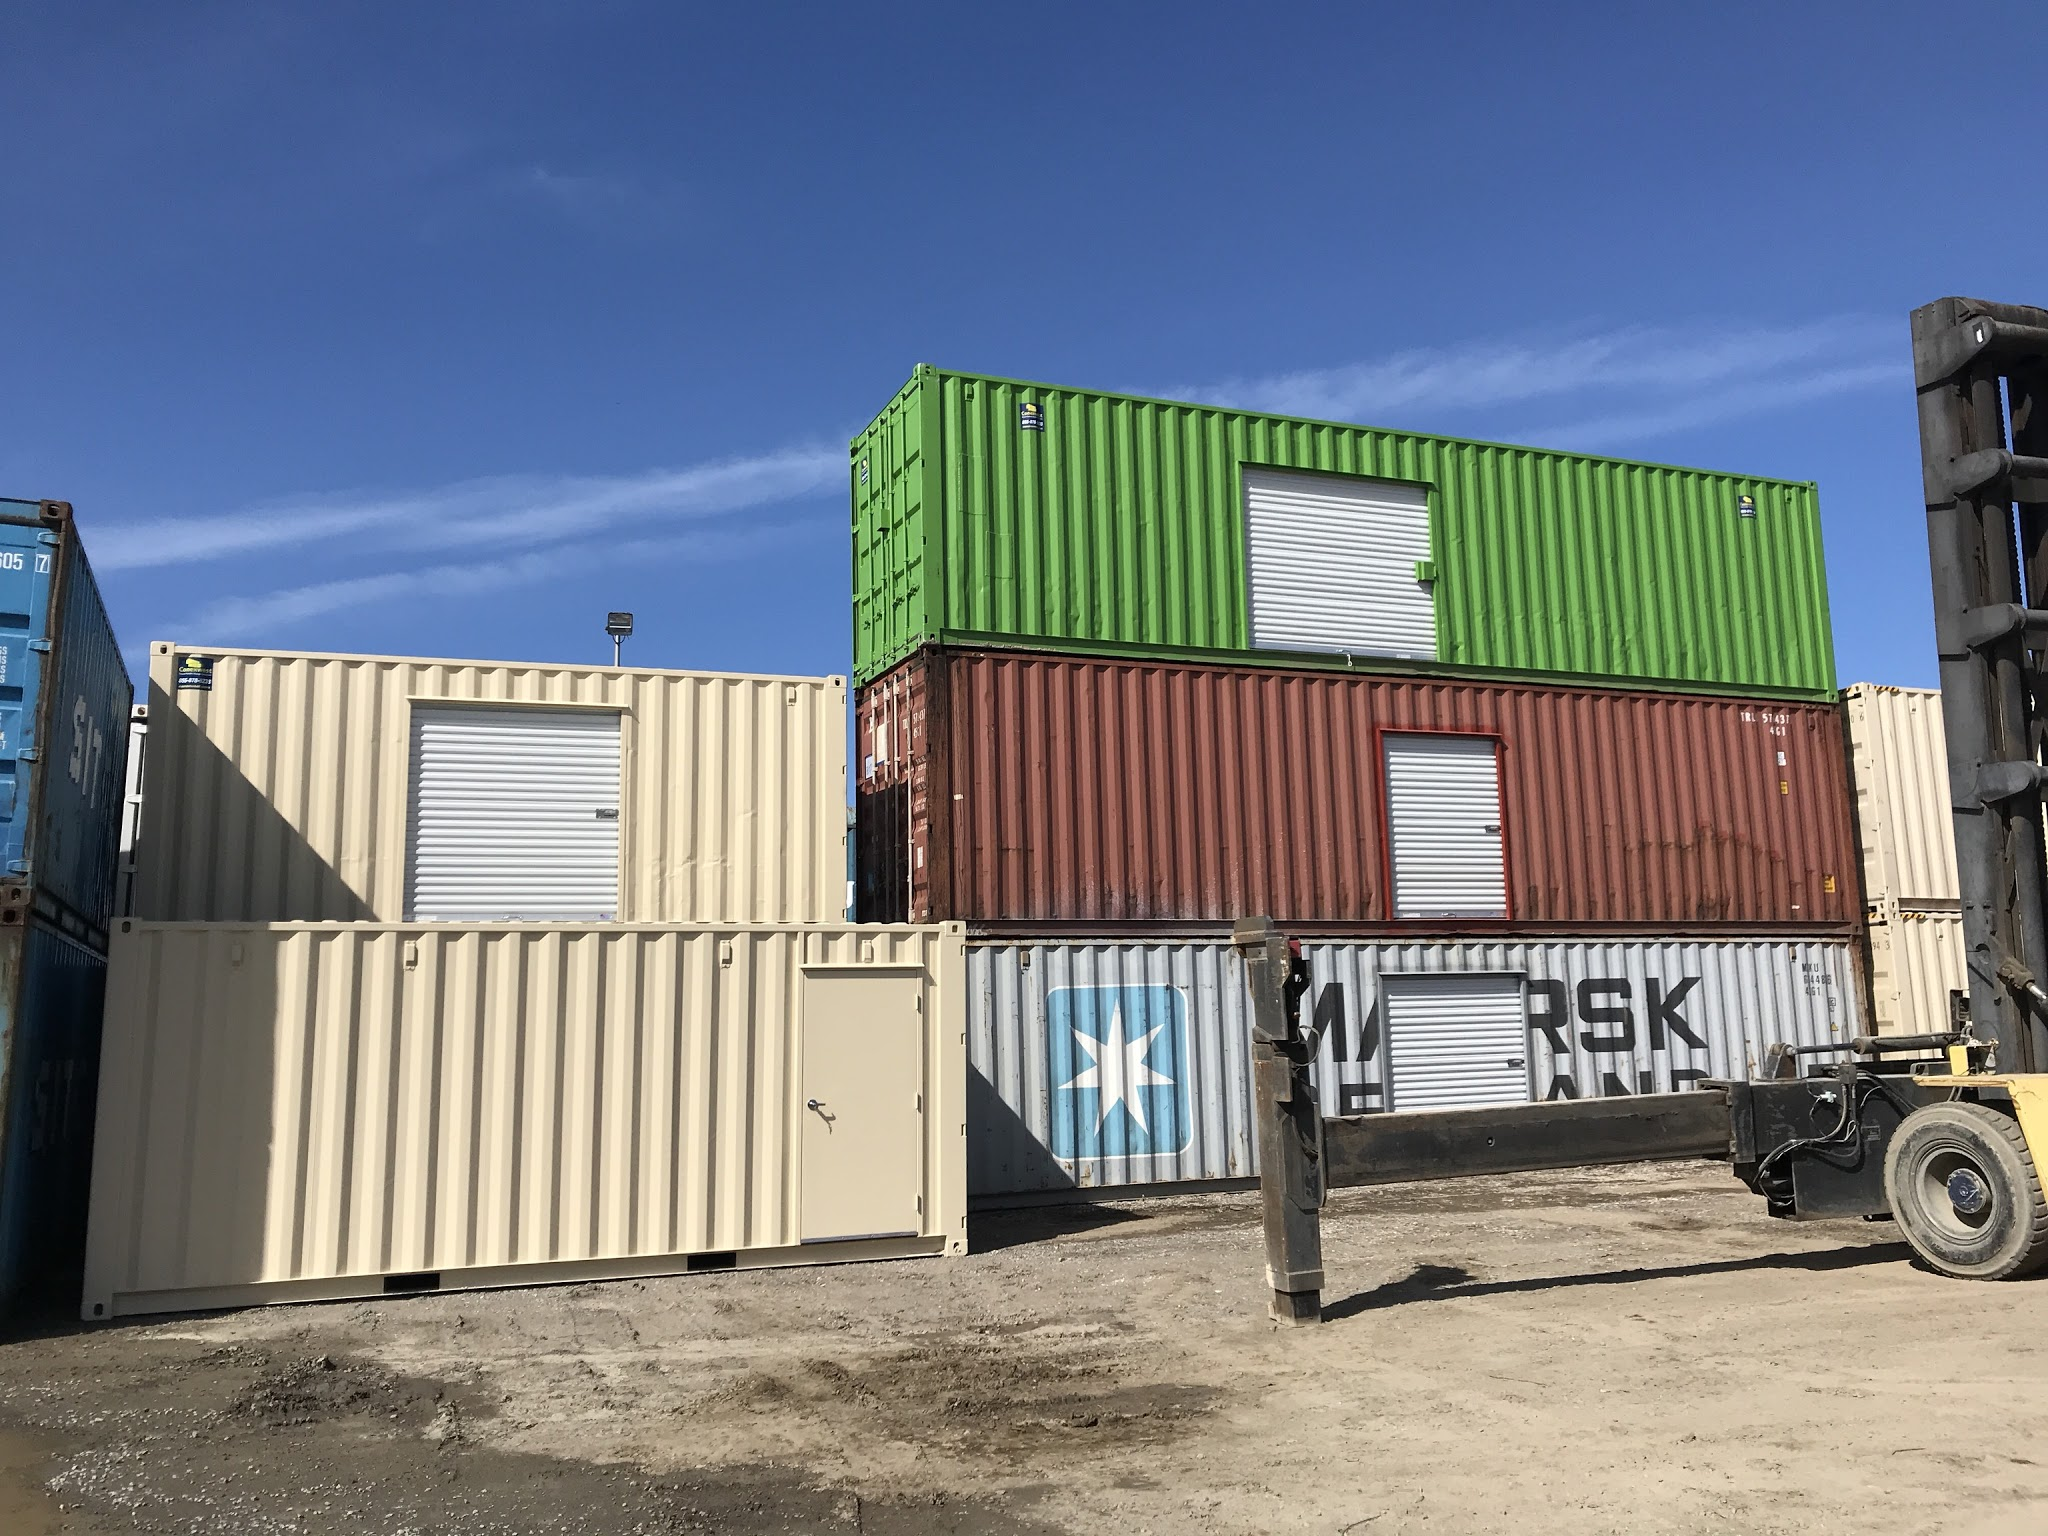 Roll up doors of shipping containers stacked on top of each other